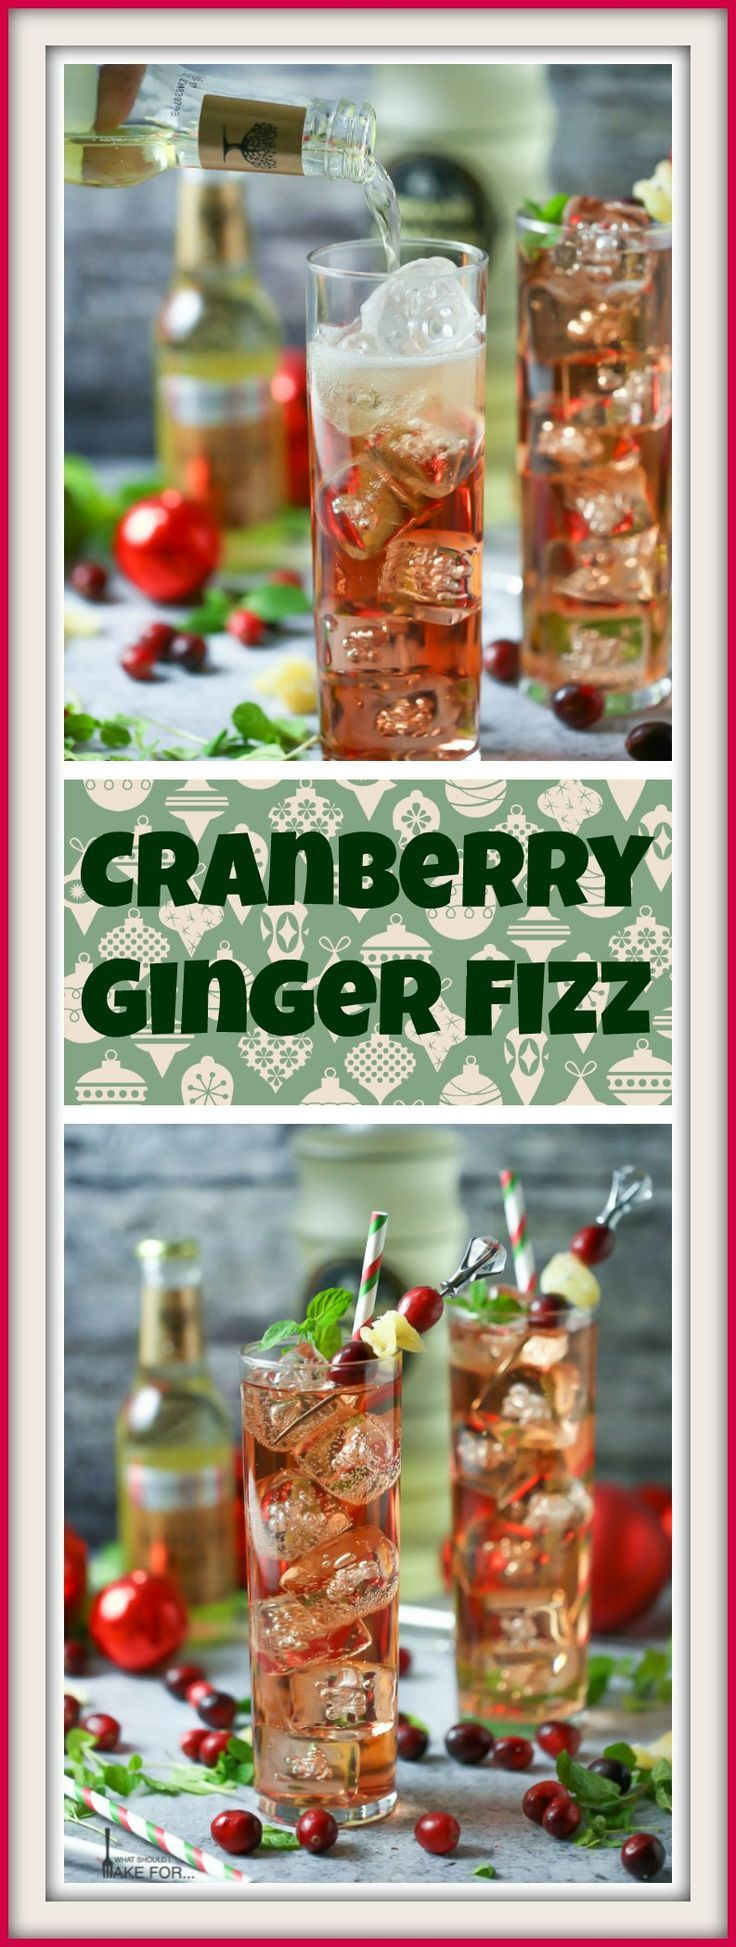 Drink and be merry with this festive cranberry ginger fizz cocktail. Tart, sweet, spicy and a whole lot of fun!